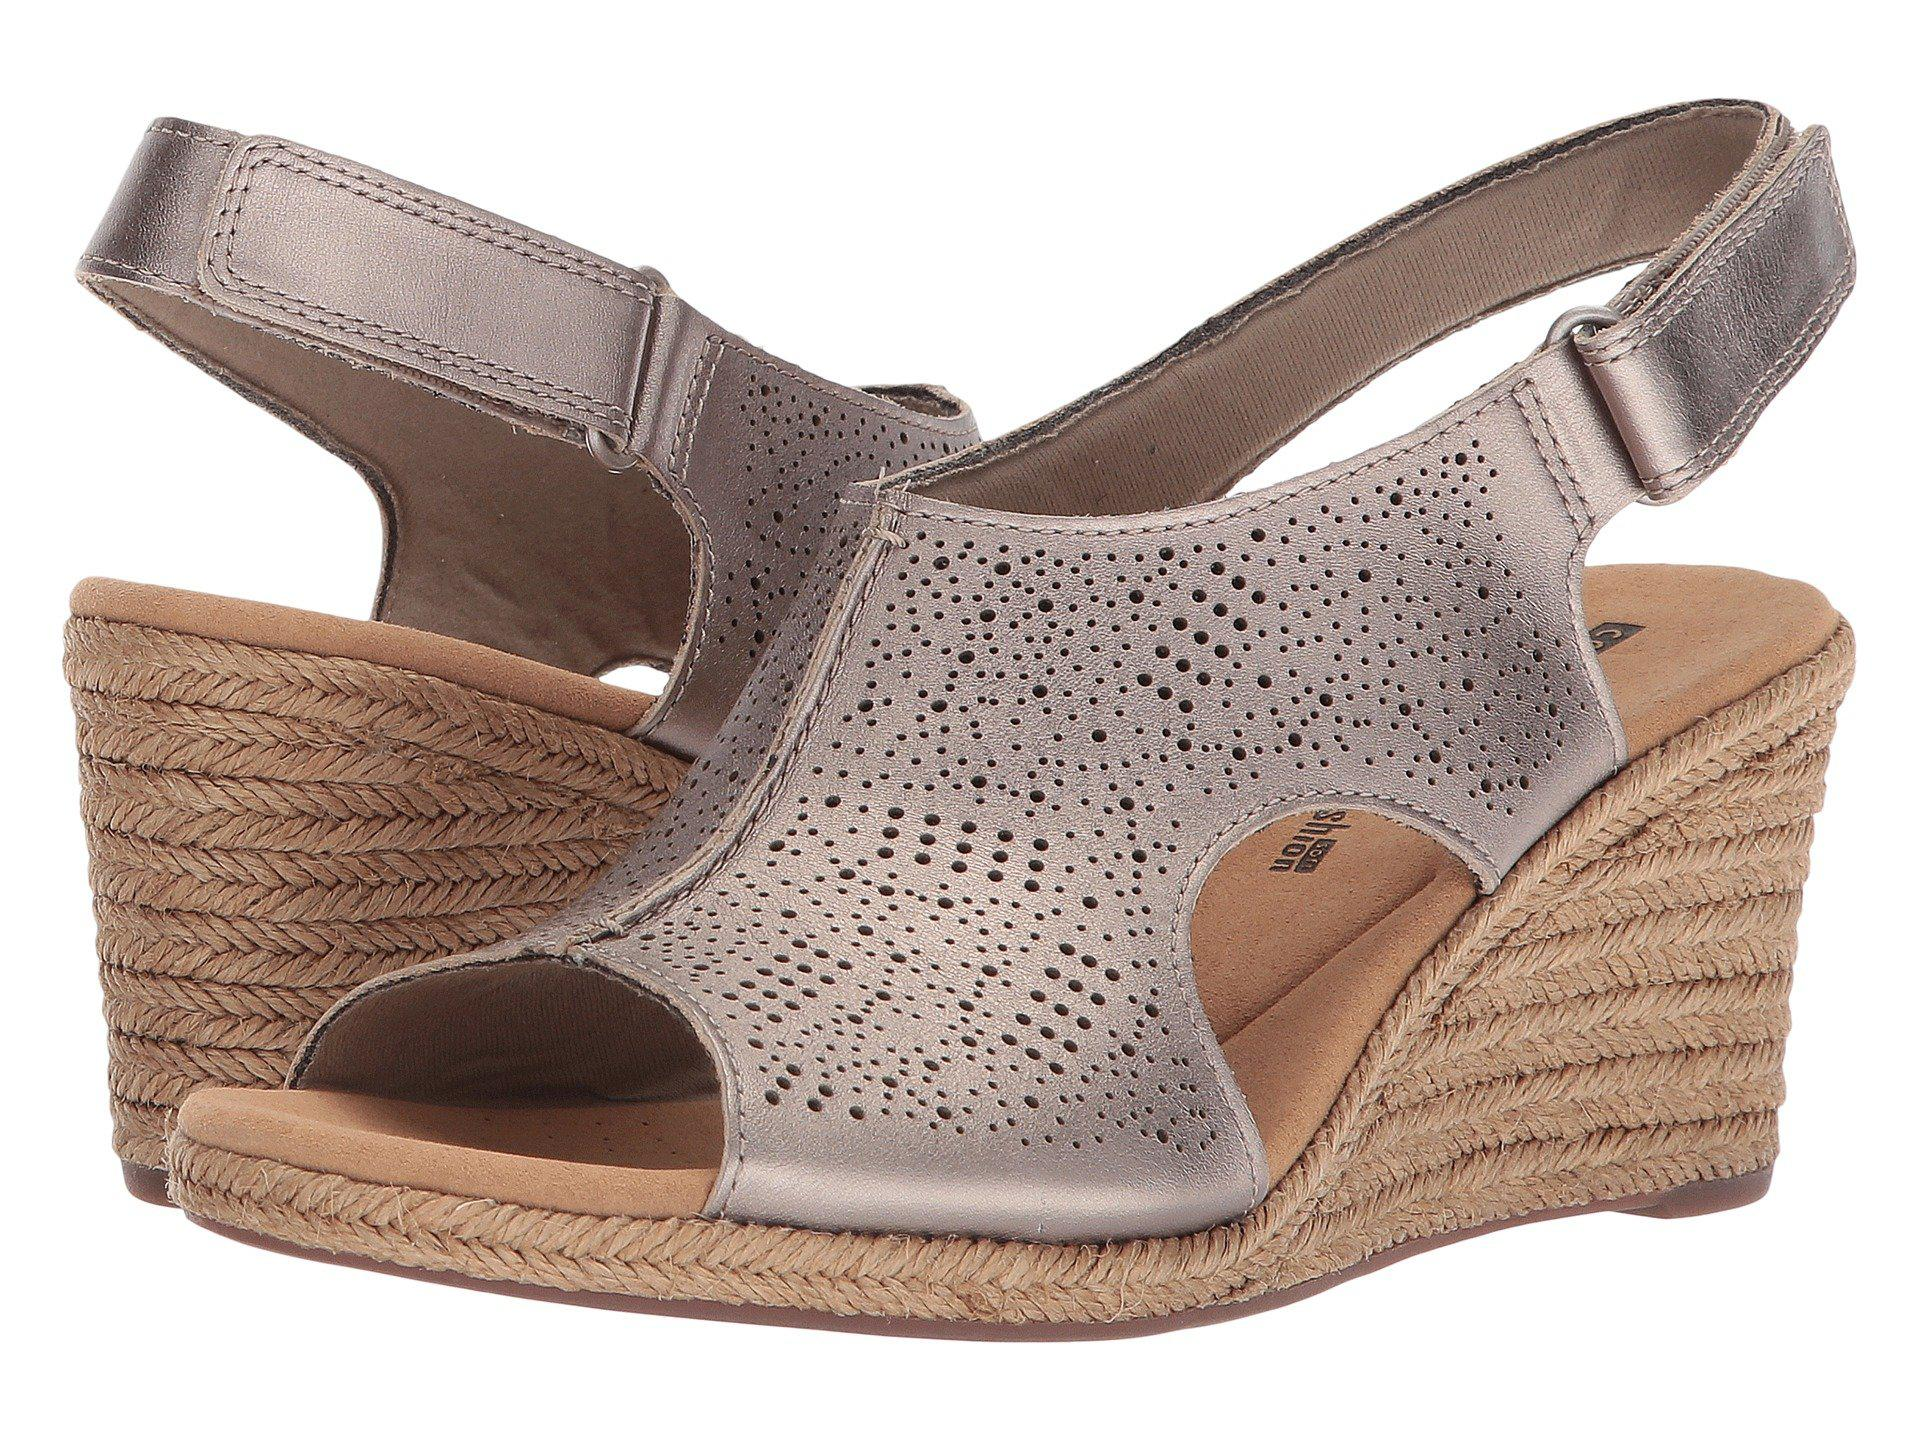 7db7a5b45df0 Lyst - Clarks Lafley Rosen (sand Leather) Women s Wedge Shoes